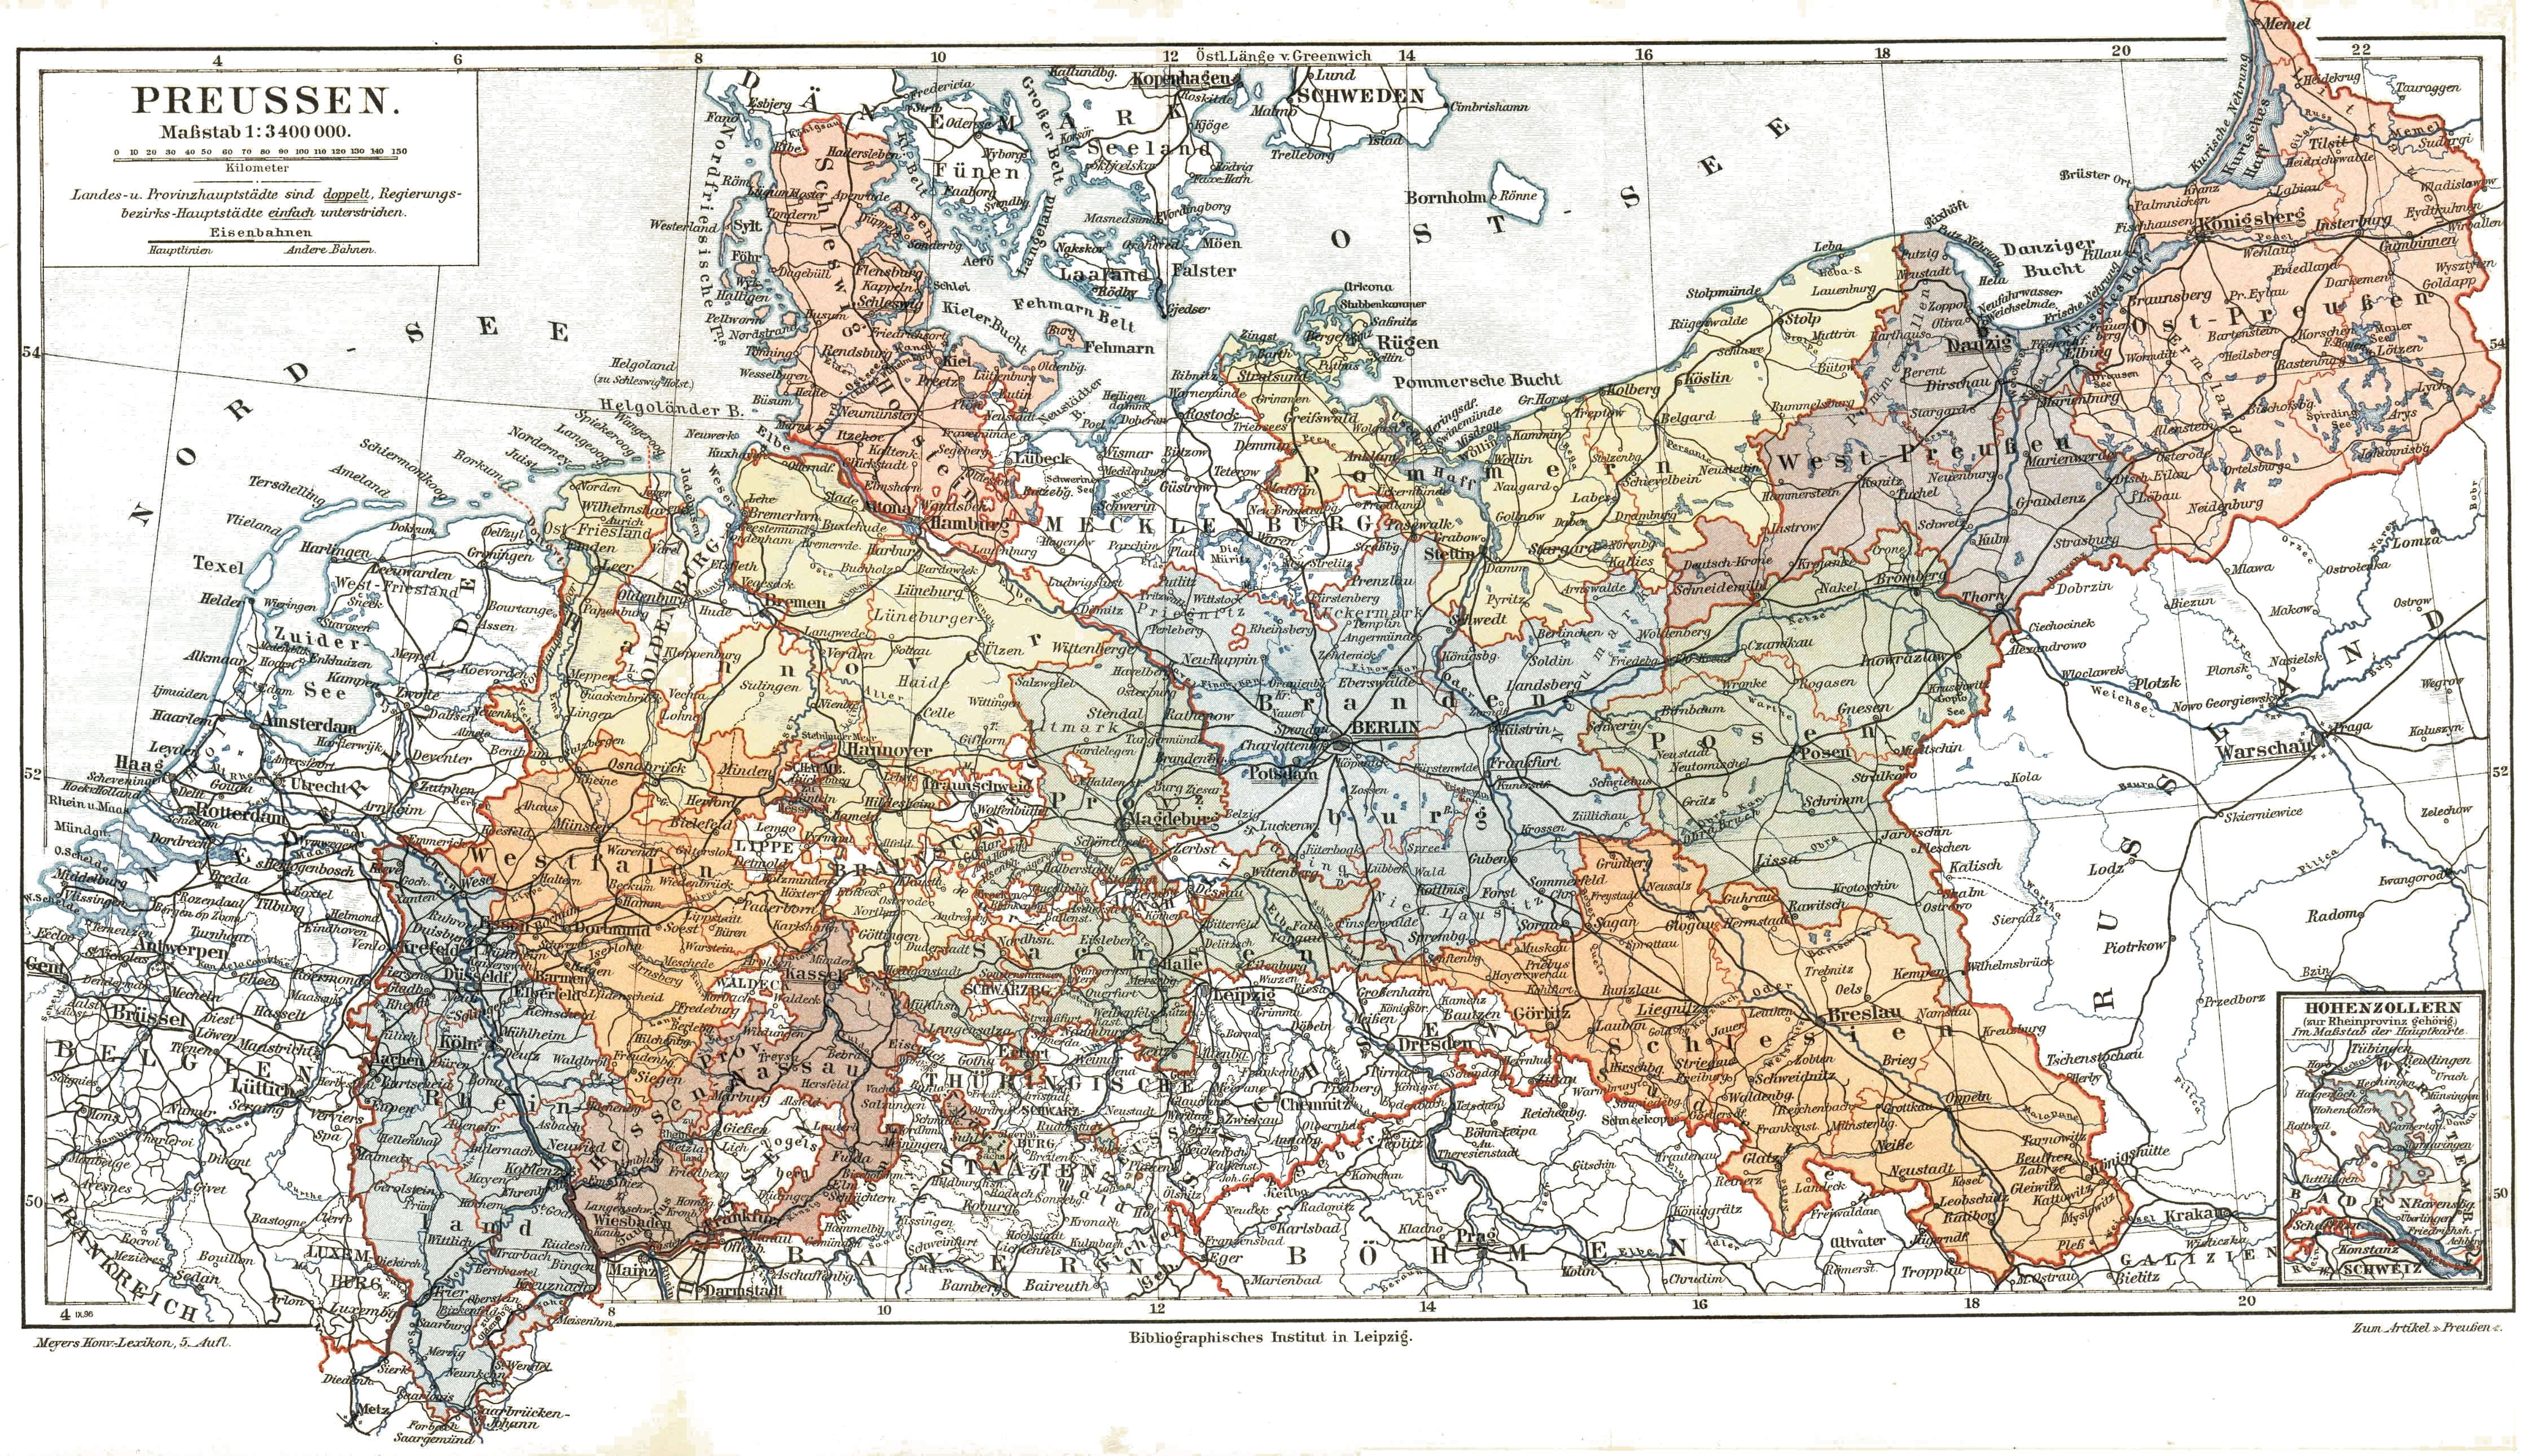 Provinces of Prussia - Wikipedia on franco-prussian war, teutonic knights, wilhelm ii, german emperor, kingdom of axum map, prussia today map, crimean war, prussia on world map, union of soviet socialist republics map, united kingdom, king of prussia mall map, east prussia 1945 map, napoleonic wars, german confederation, prussia 1861 map, democratic republic of the congo map, austrian empire, german empire, west prussia map, prussia history map, kingdom of prussia flag, holy roman empire, kingdom of prussia 1815, confederation of the rhine map, east prussia, austro-prussian war, weimar republic, battle of waterloo, kingdom of prussia history, kingdom of denmark map, grand duchy of lithuania map, prussia 1853 map, prussia on a map, prussia flag map, kingdom of prussia coat of arms, unification of germany,